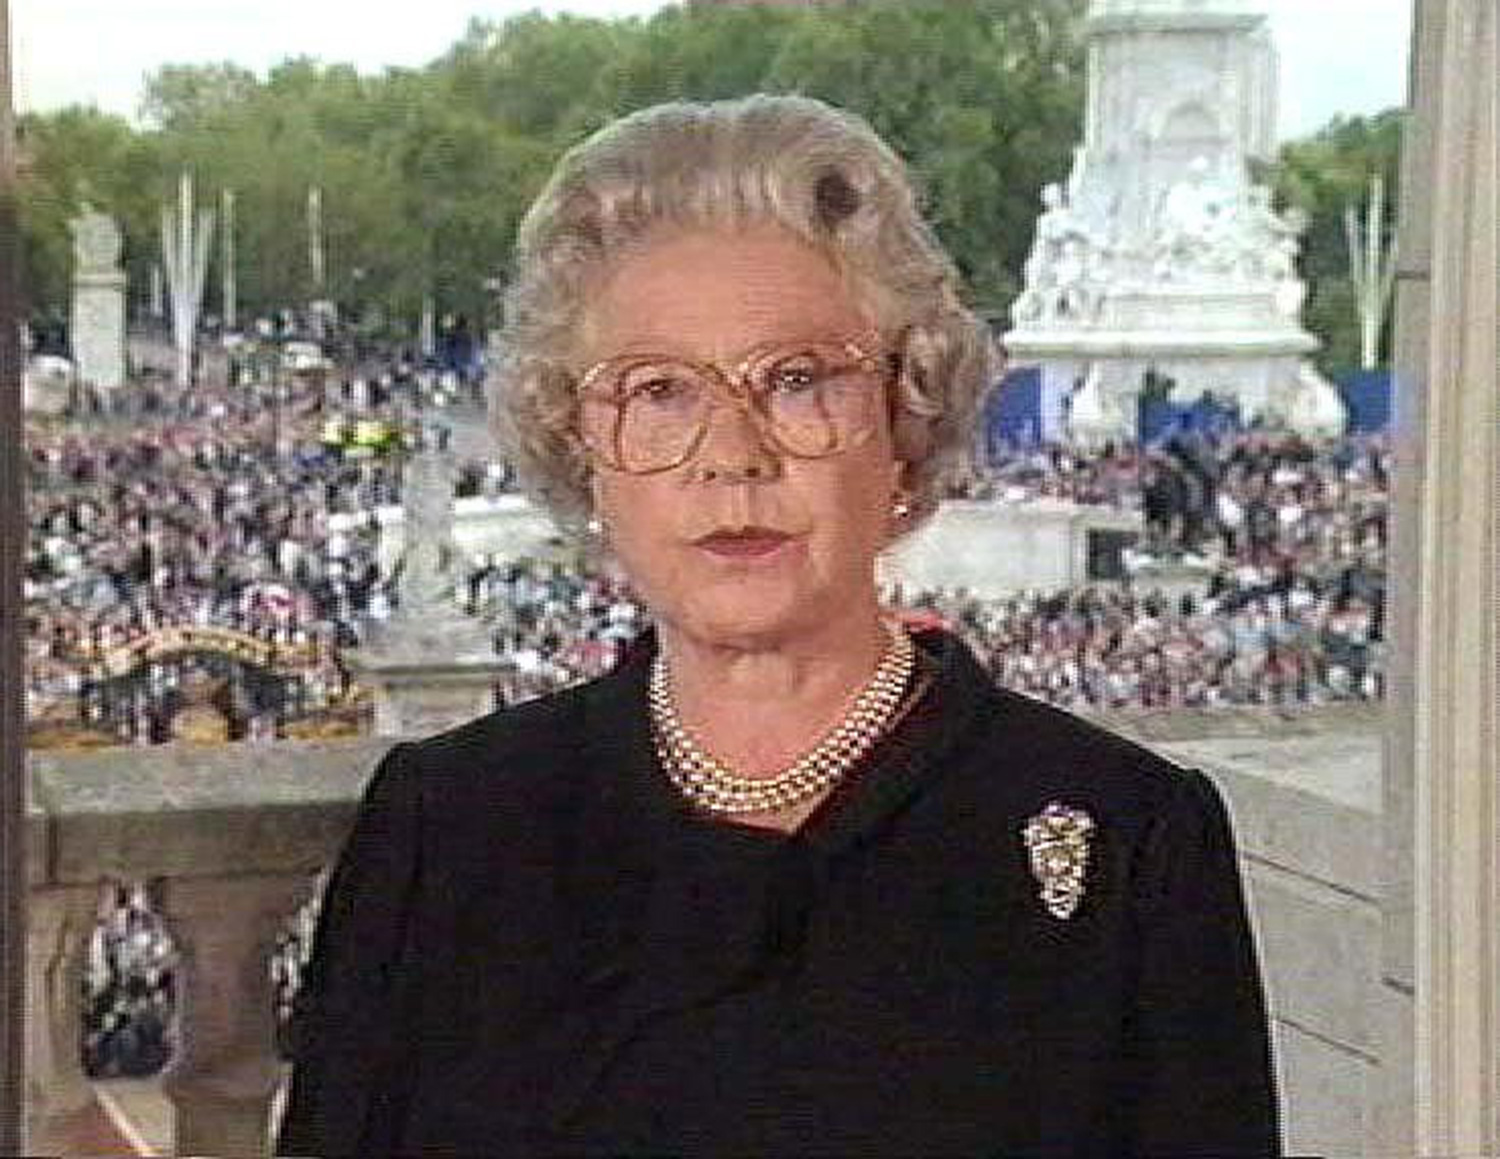 QUEEN ELIZABETH II MAKING TELEVISED SPEECH ABOUT THE DEATH OF PRINCESS DIANA THE DAY BEFORE THE FUNERAL, BUCKINGHAM PALACE